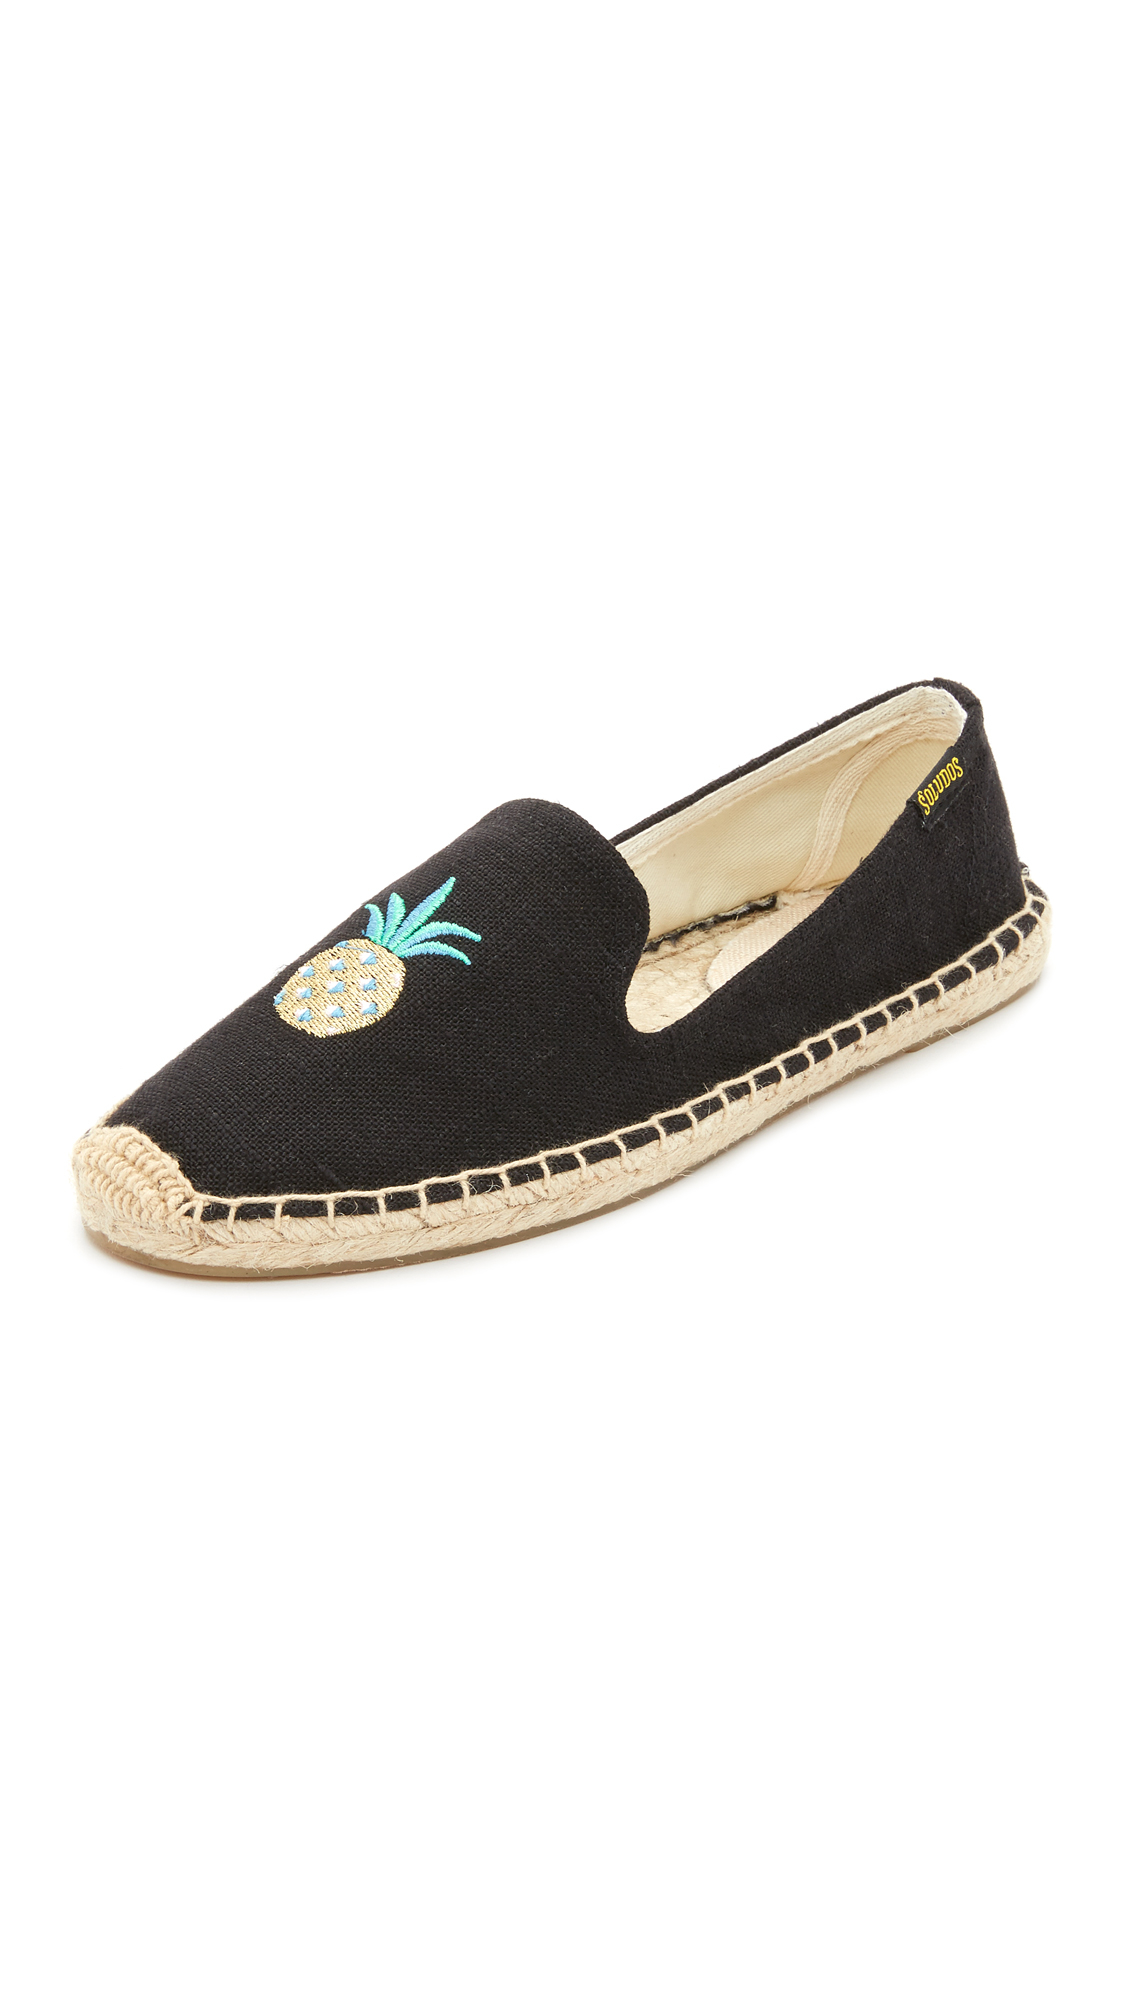 Free shipping on Soludos shoes at marloslash.ml Shop for flats, slip-ons and more. Totally free shipping and returns.